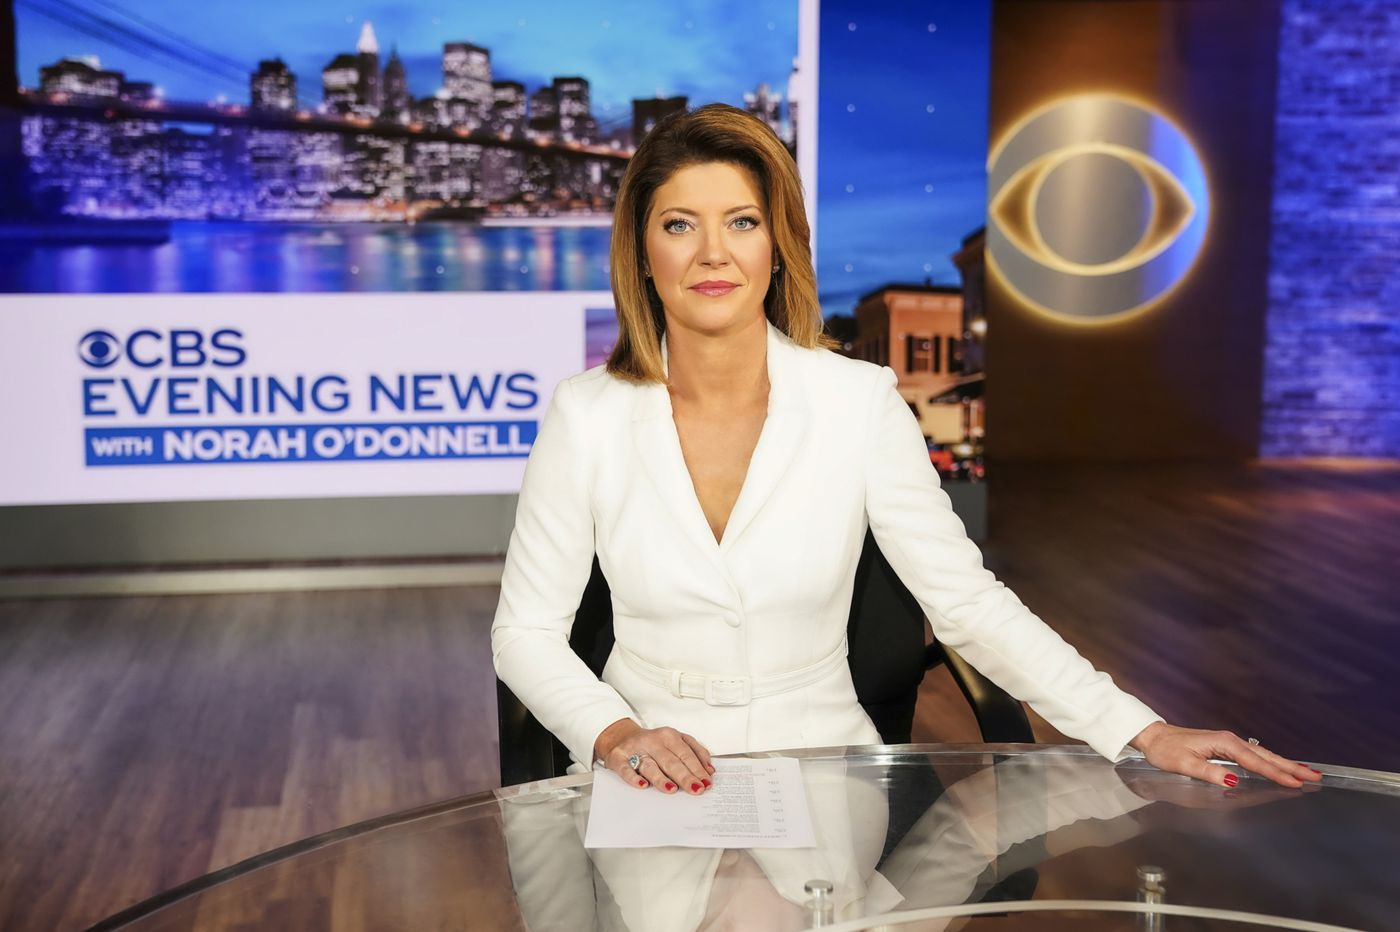 CBS News takes some chances with new anchor Norah O'Donnell